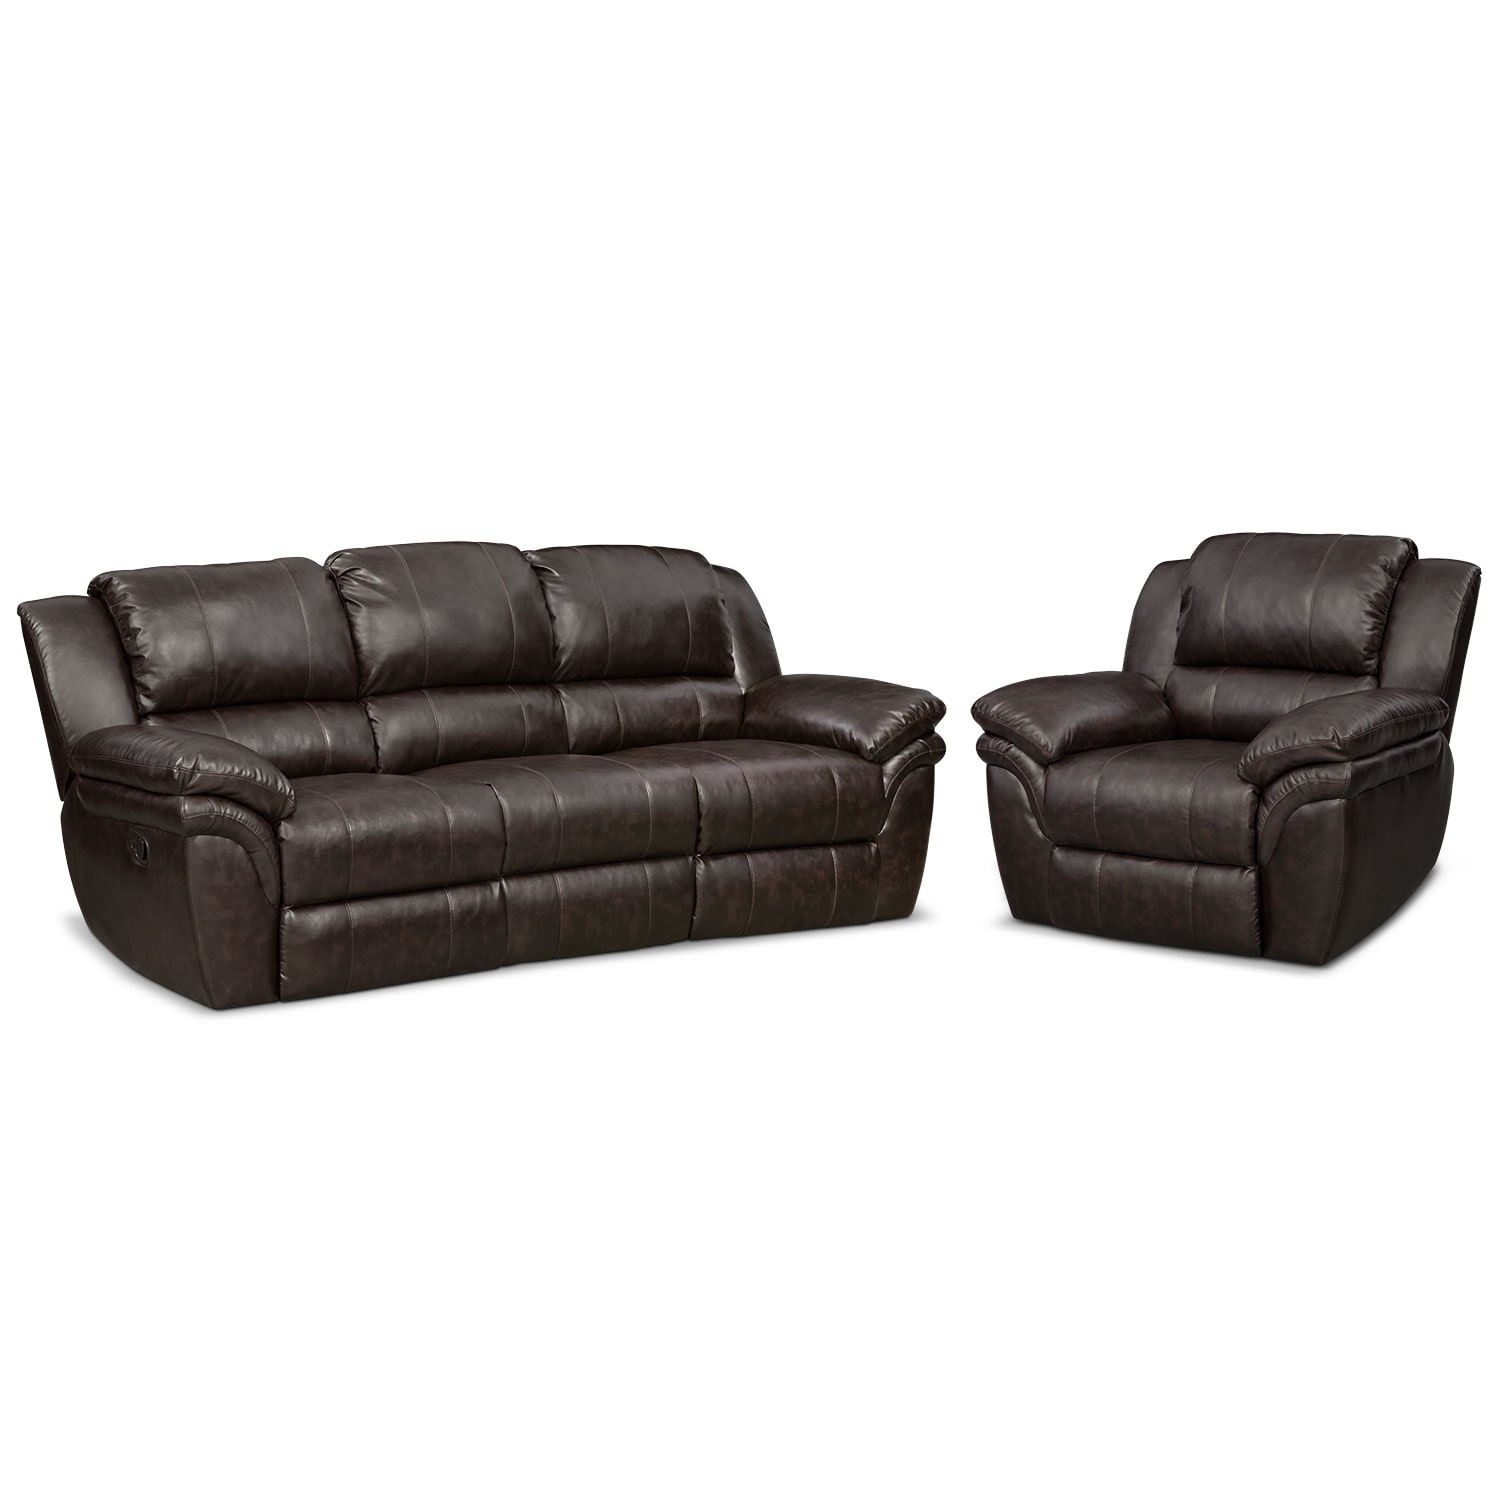 Living Room Furniture - Aldo Manual Reclining Sofa and Recliner Set